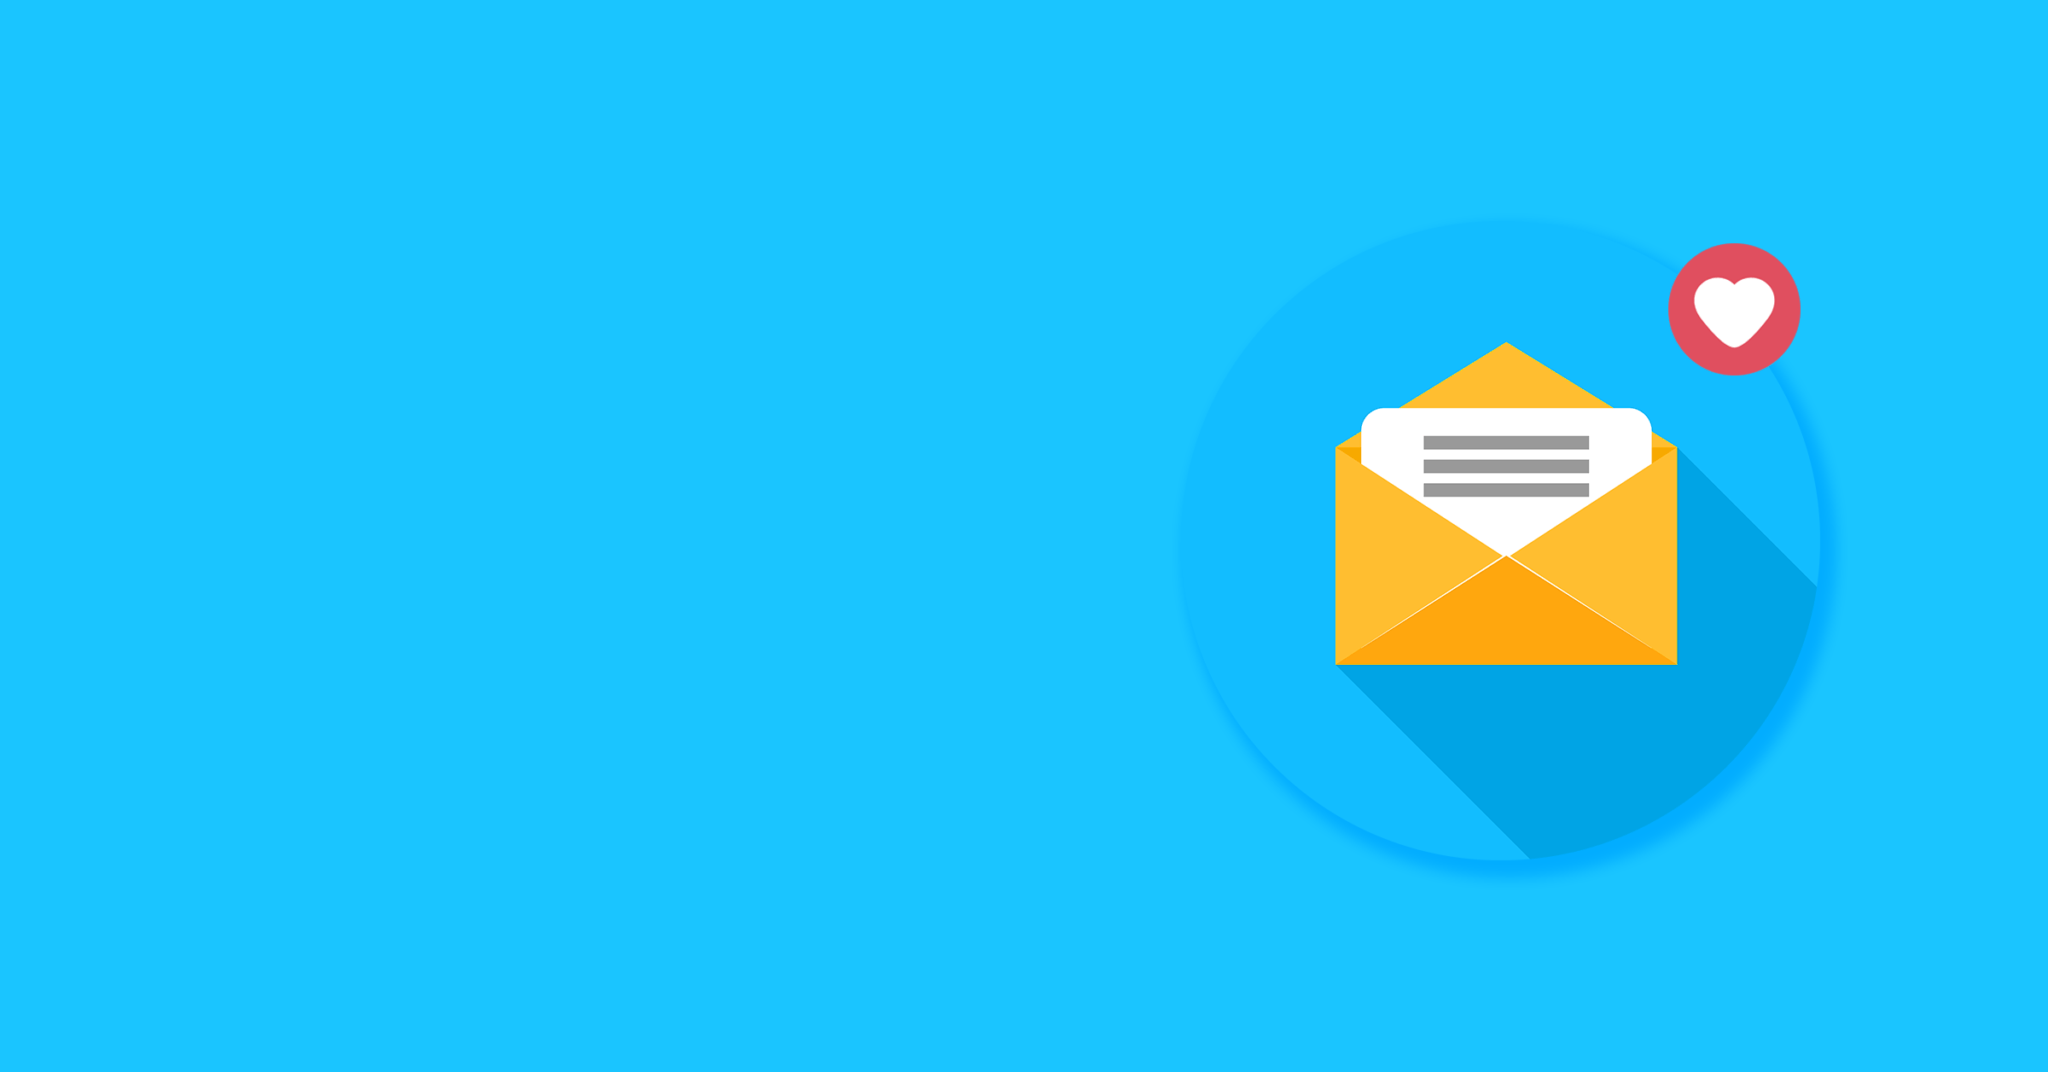 50 Percent Off Coupon Email Marketing Convertkit 2020